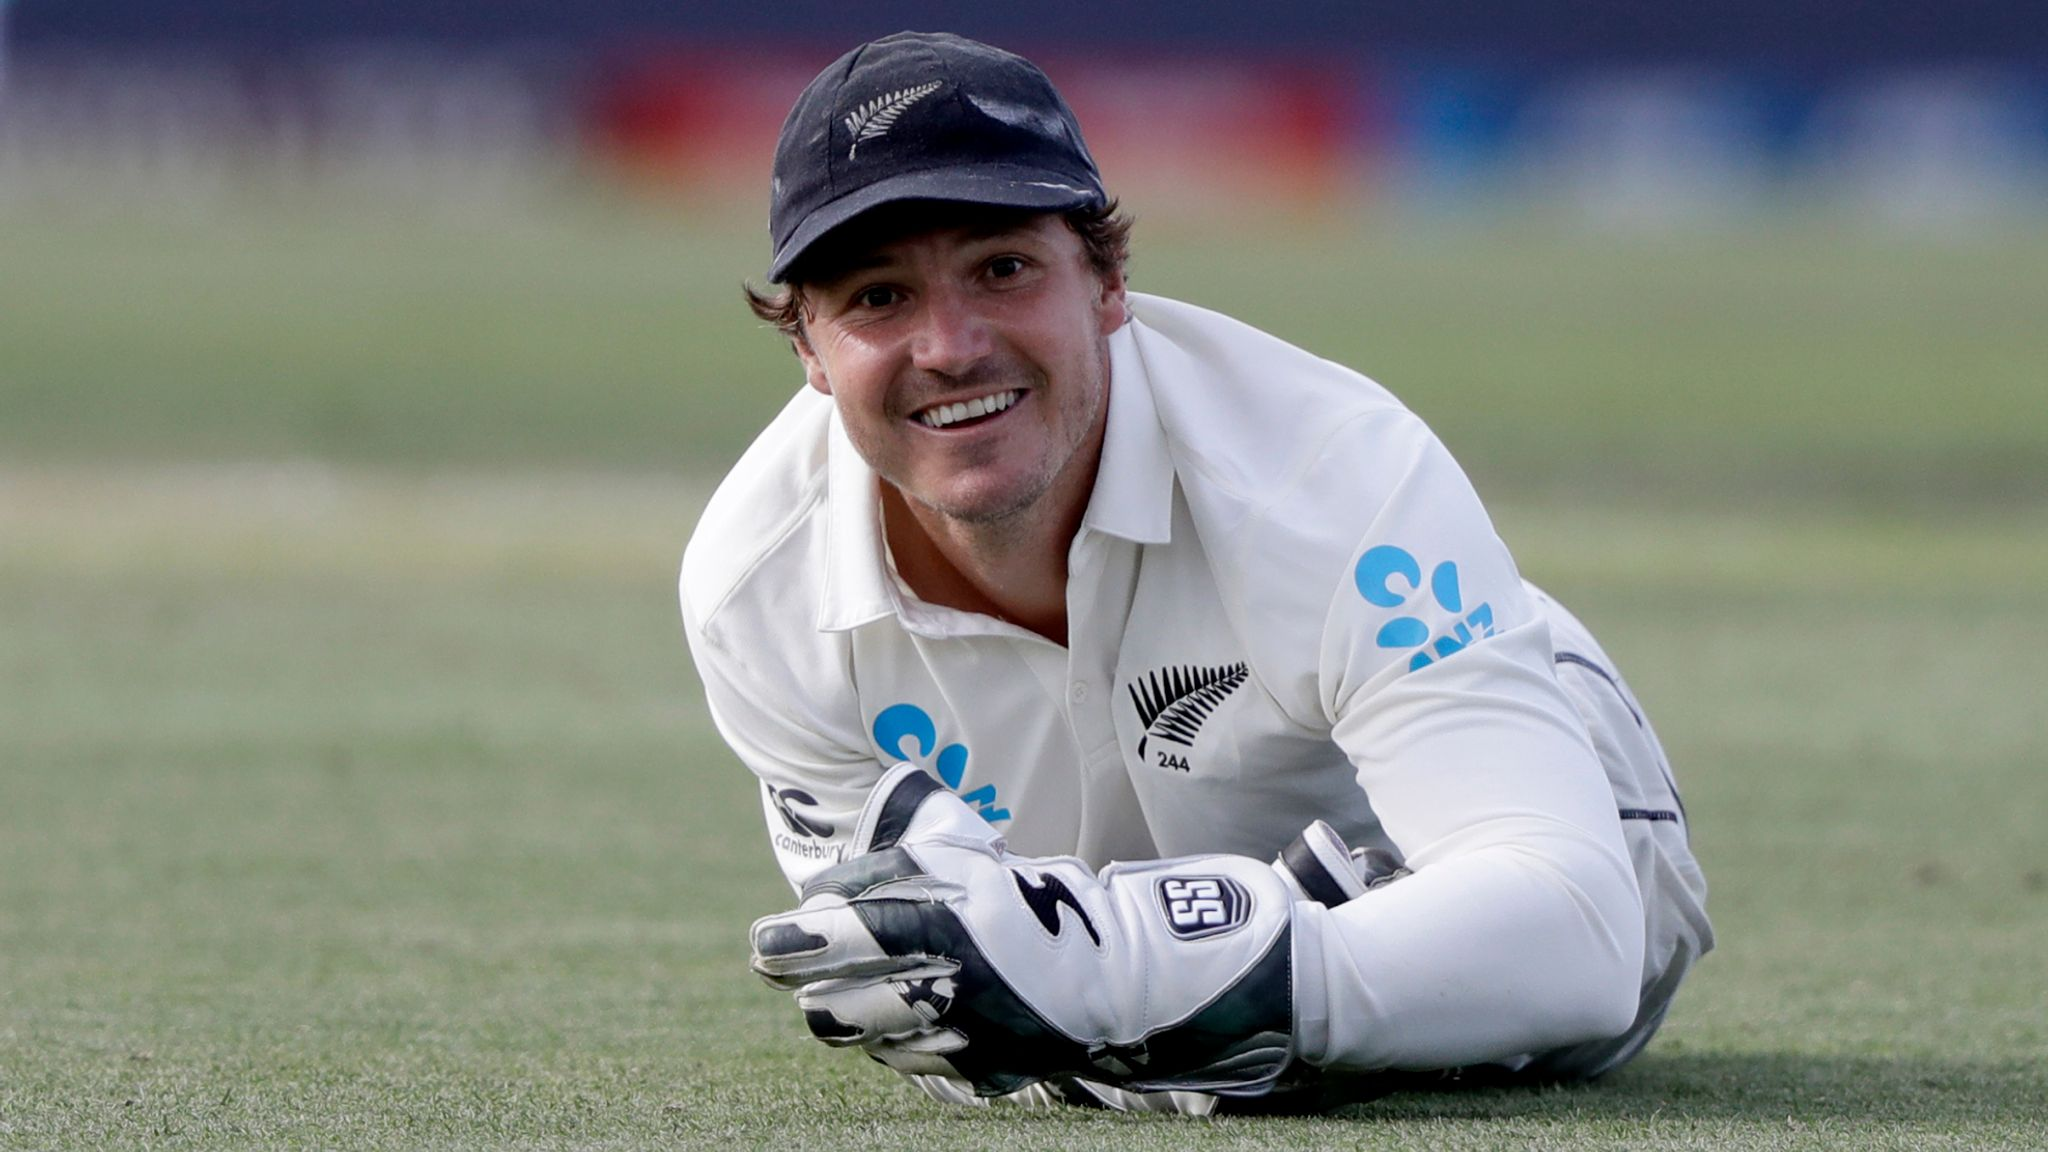 BJ Watling: New Zealand wicketkeeper to retire after England tour in June |  Cricket News | Sky Sports